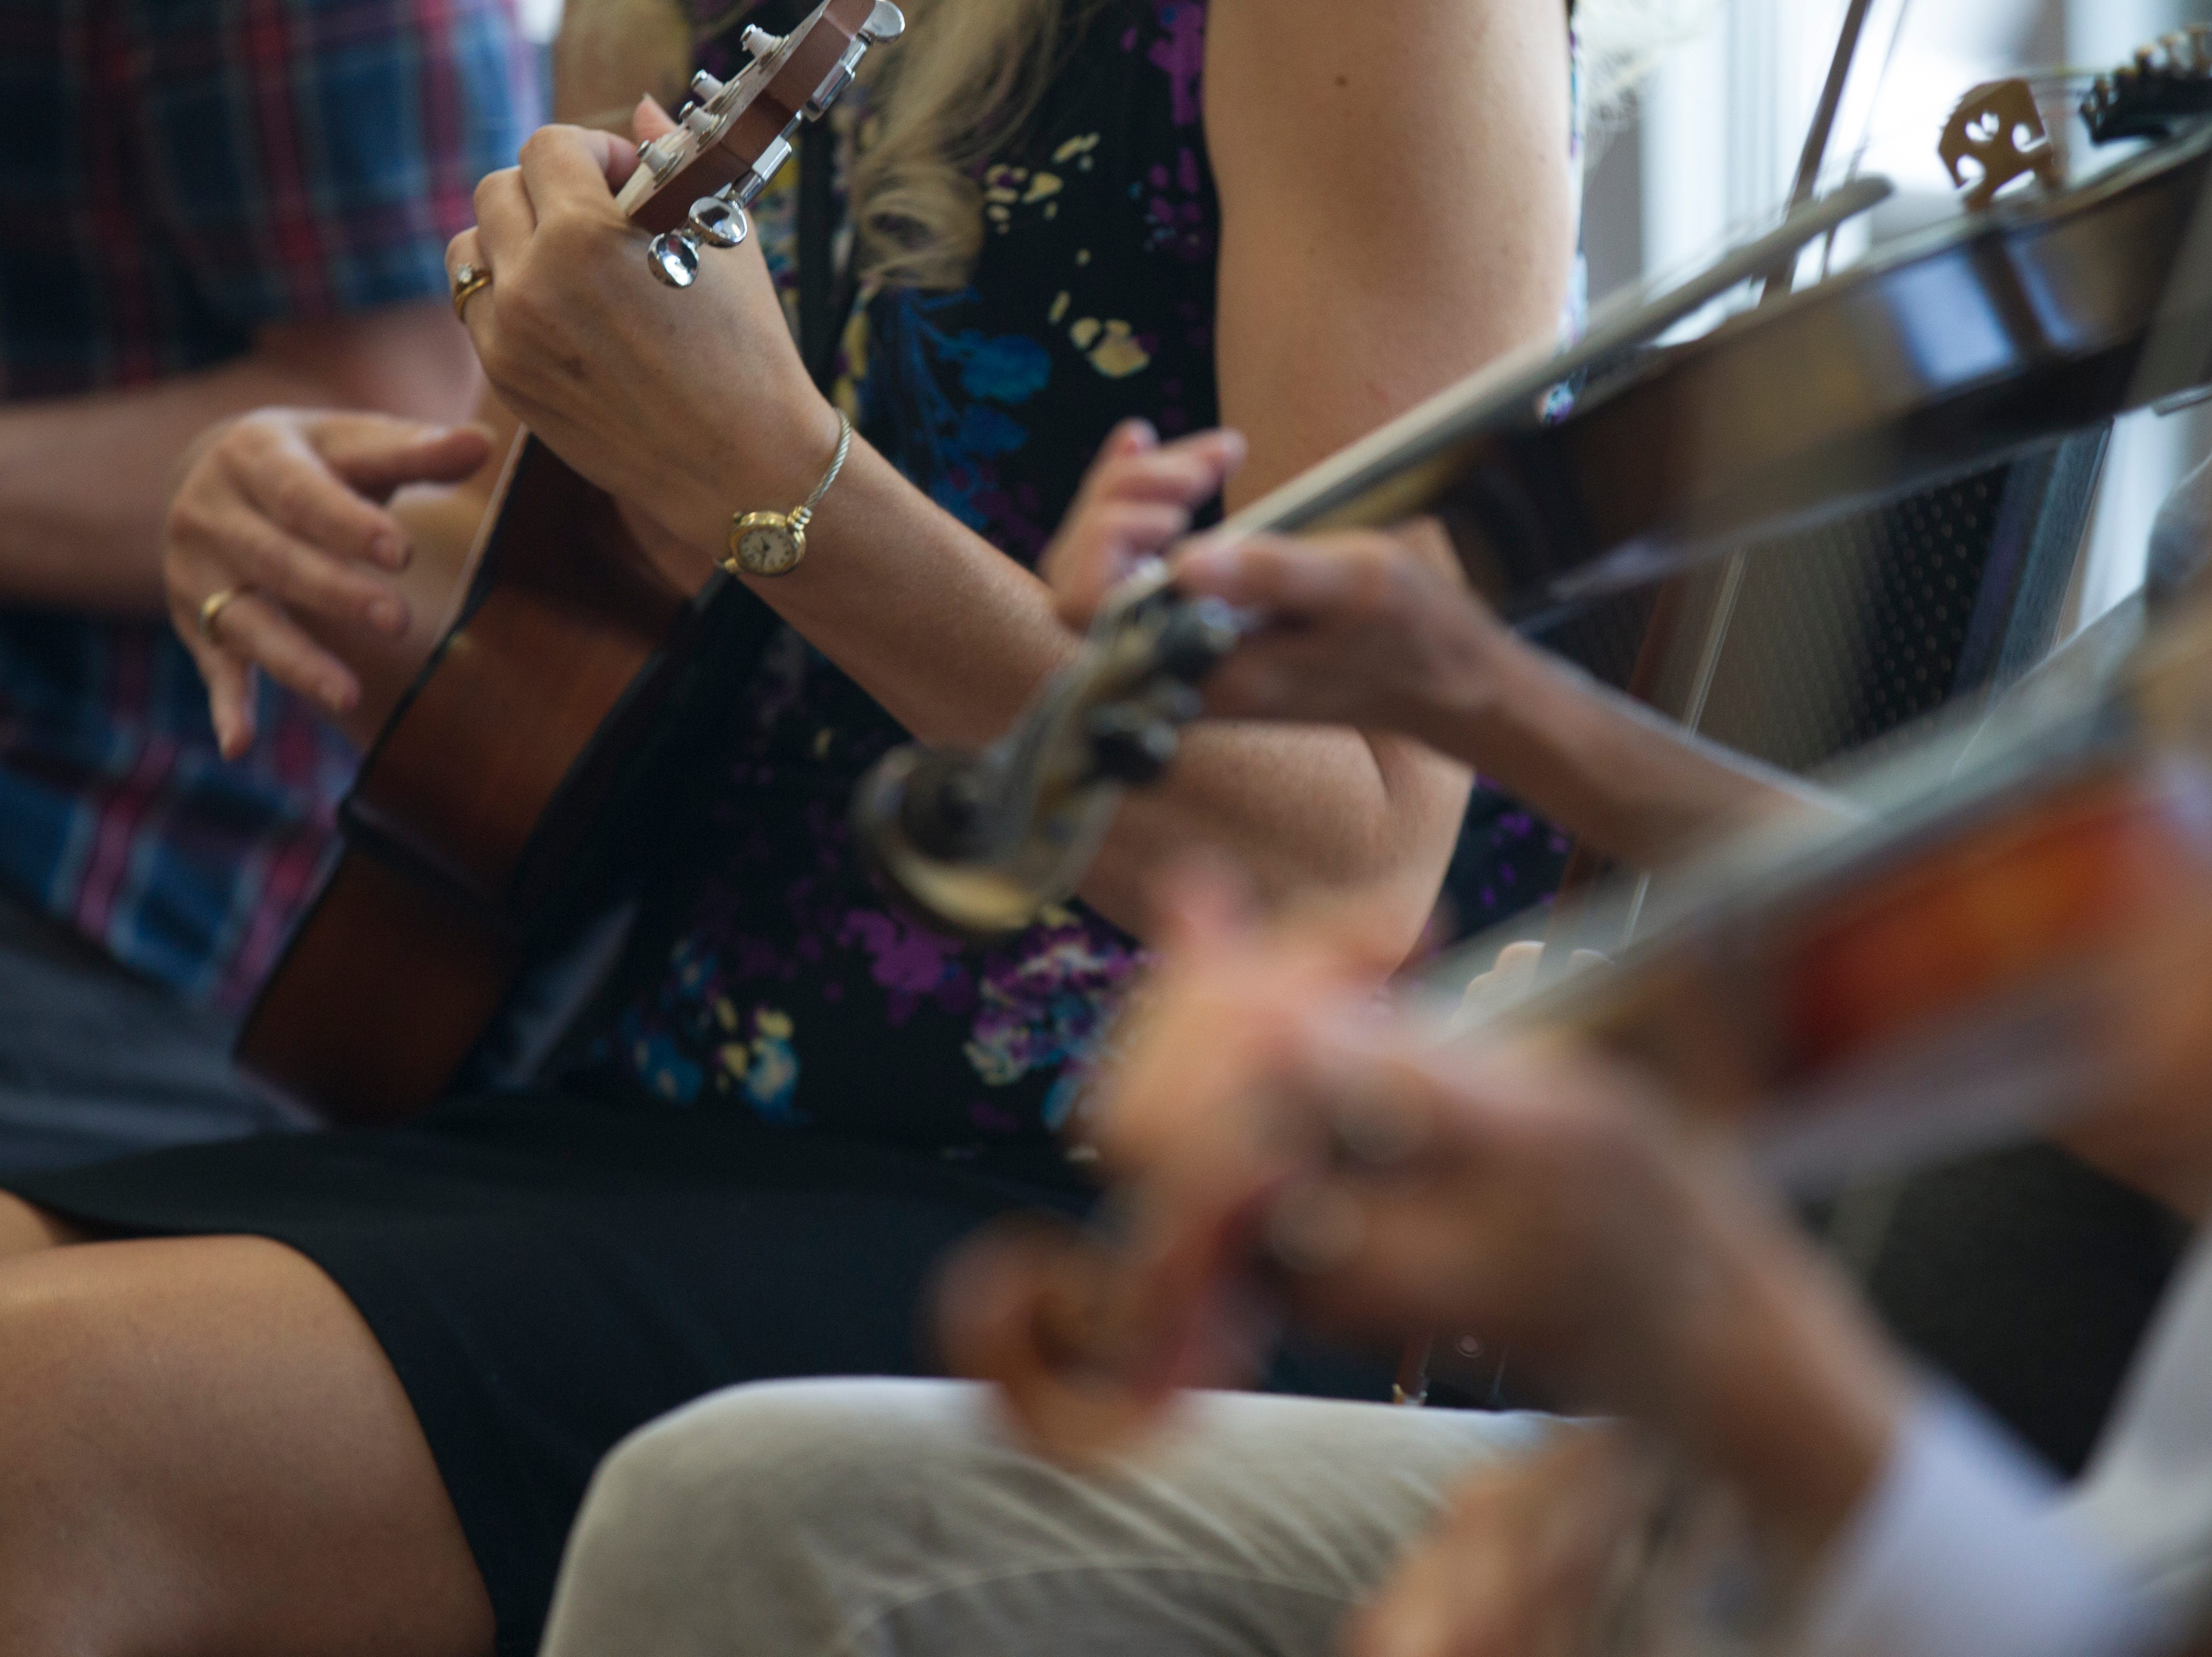 """Workshop participants play along during a free """"Learn to Jam Bluegrass Workshop"""" on Wednesday, July 25, 2018, at West Music in Coralville, Iowa. Savage was joined by the other two members of the Savage Hearts trio during the two hour workshop."""